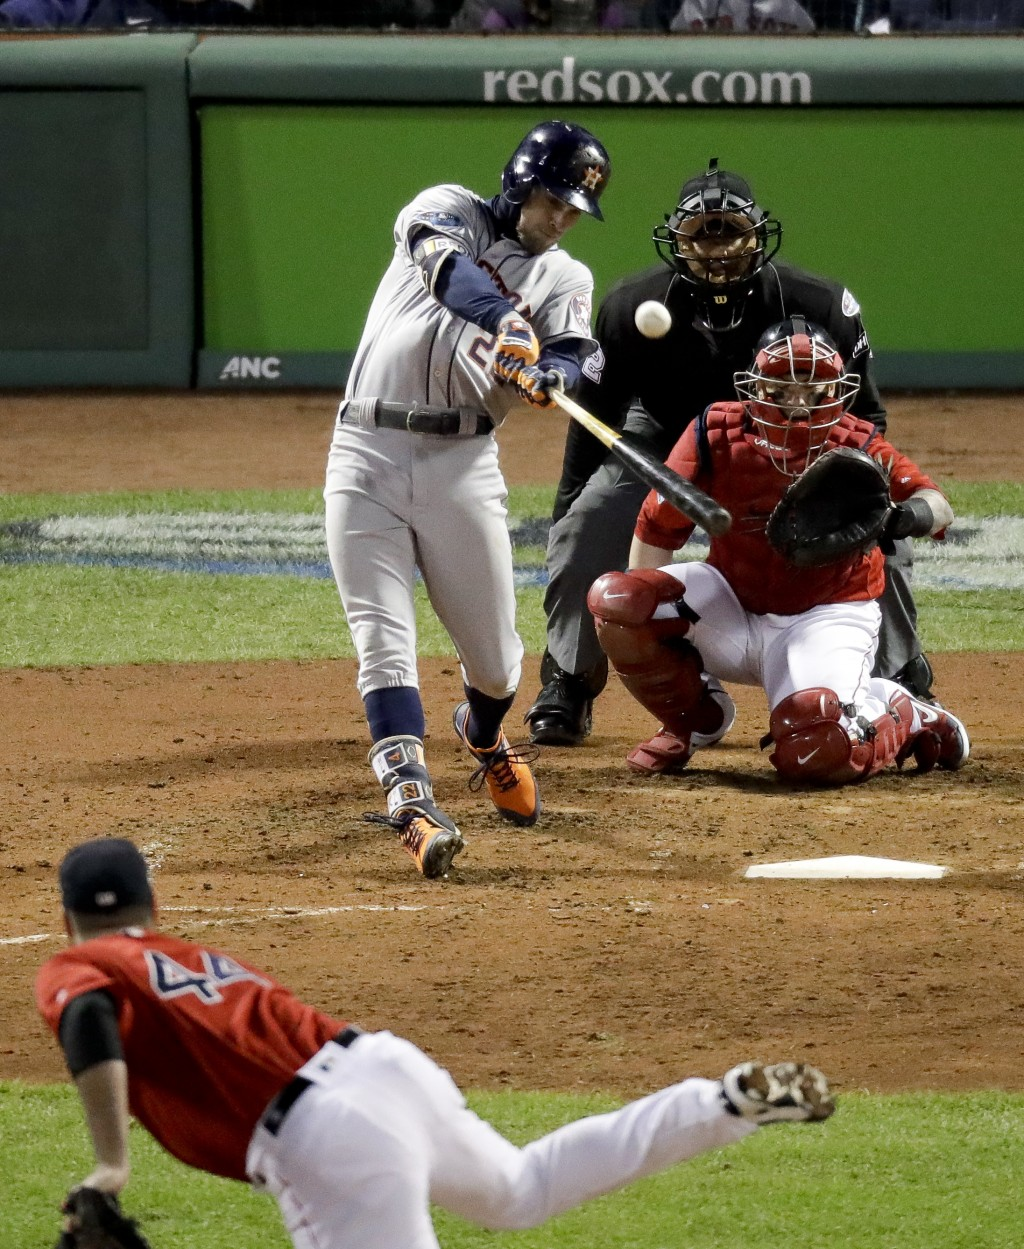 Houston Astros' Josh Reddick hits a home run against the Boston Red Sox during the ninth inning in Game 1 of a baseball American League Championship S